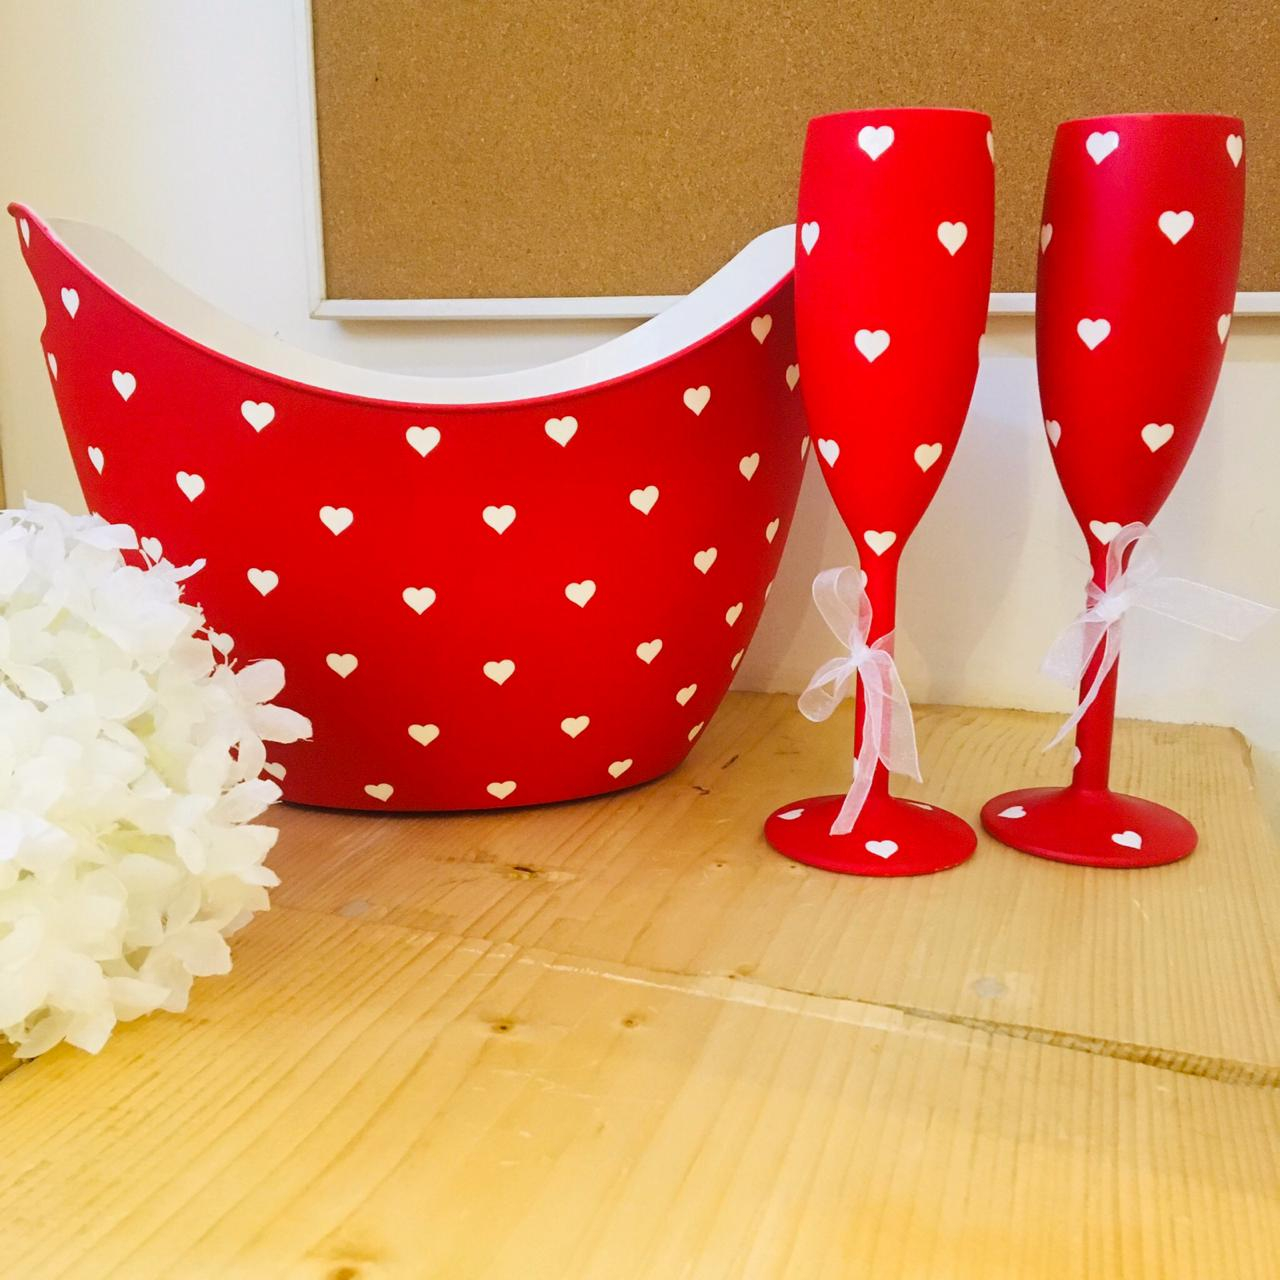 Dipped In Love Unbreakable Champagne Flutes, set of 2 with Chilling Bucket